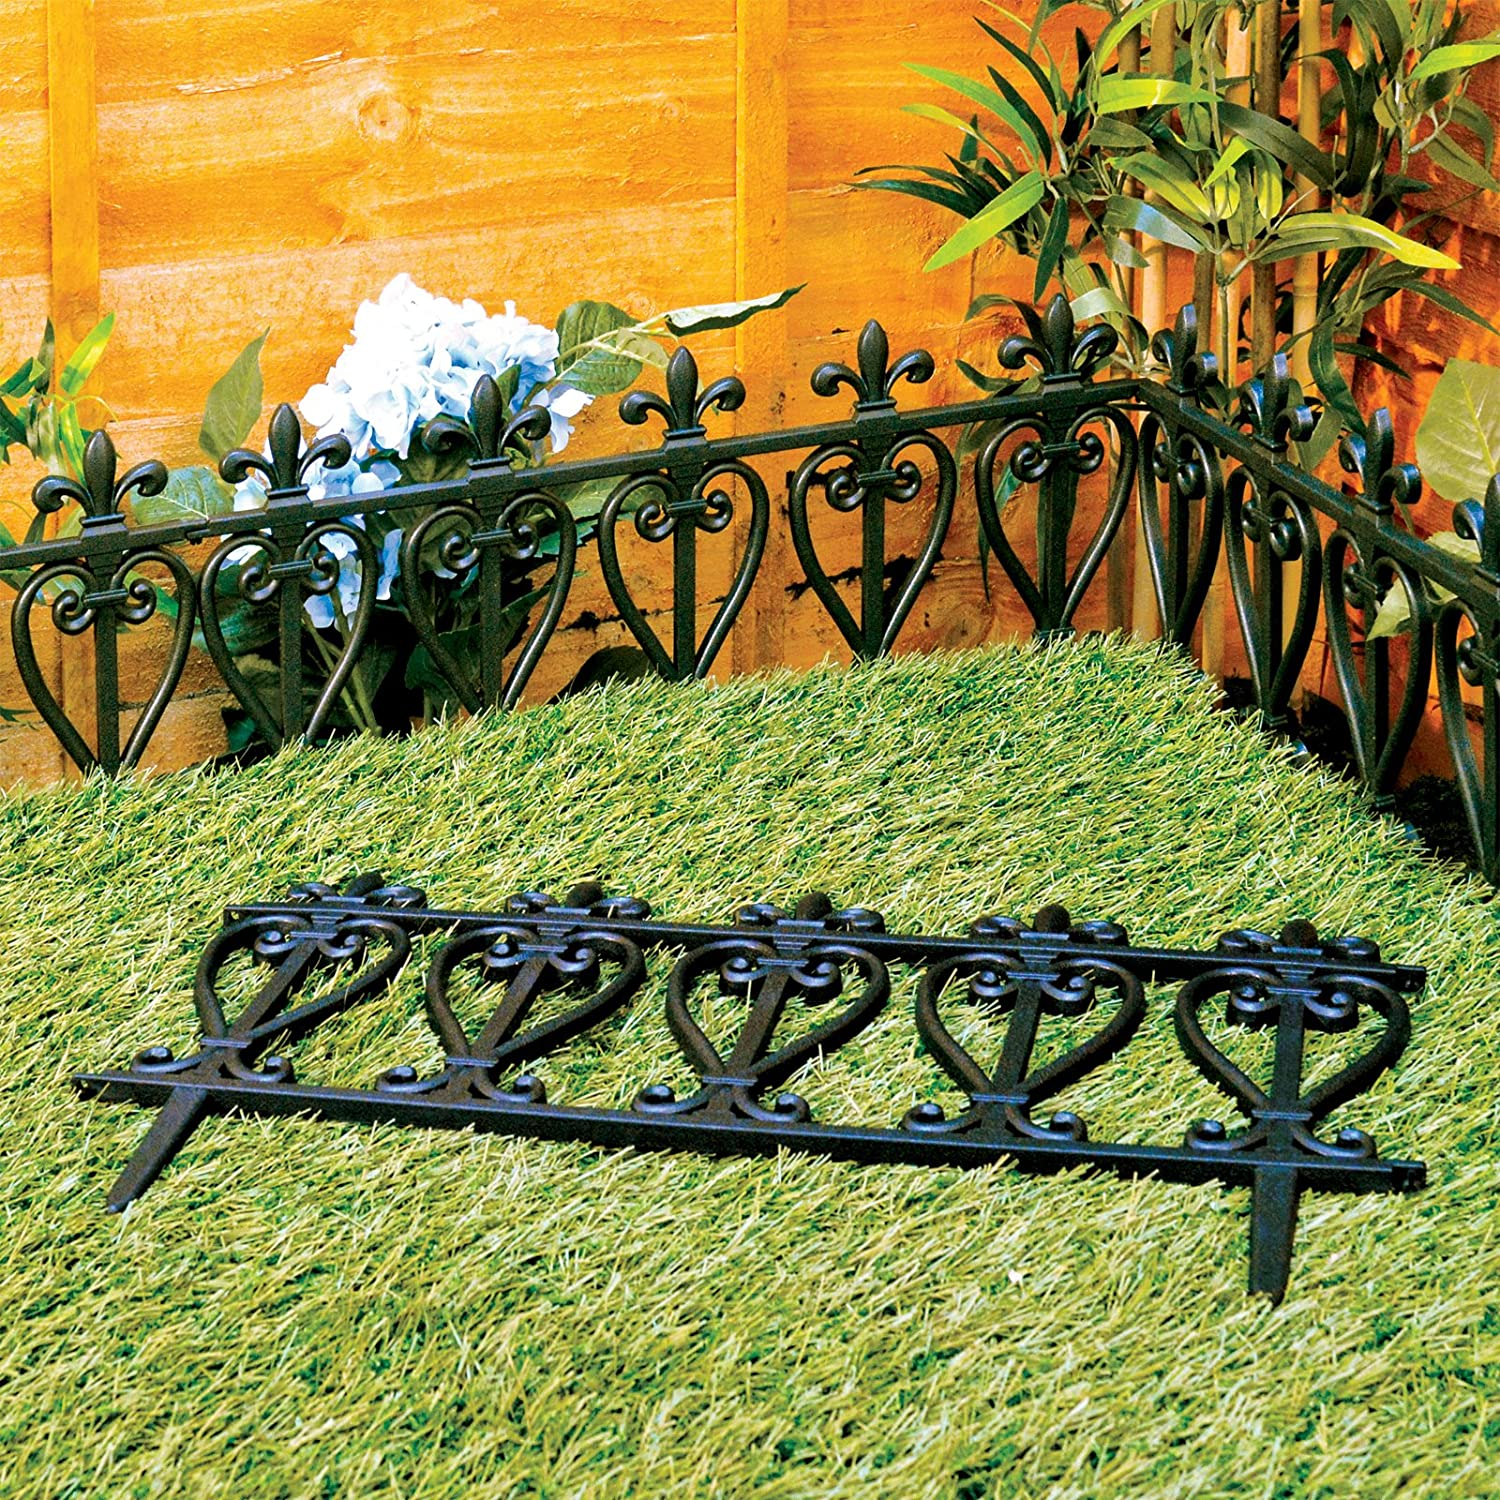 Lawn Enclosure 30 cm 4m Plastic Flowerbed Border Fence Ornate Garden Fence